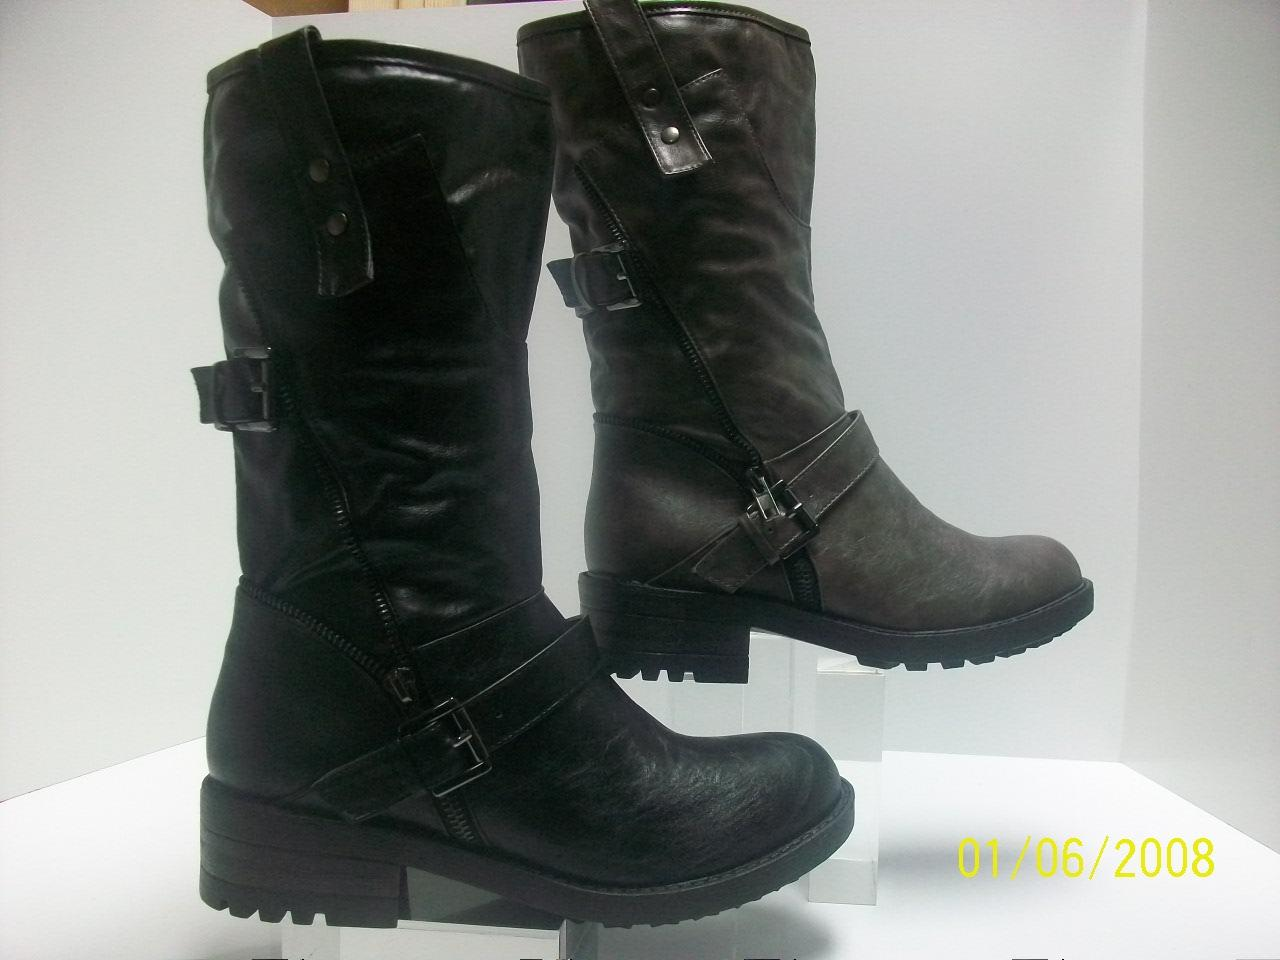 Elegant The Boots Are Available In A Choice Of Black Or Brown In Womens UK Sizes 3 Through 6 Todays Groupon Offers Womens Leather Biker Boots For &1633998 In Black Or Brown